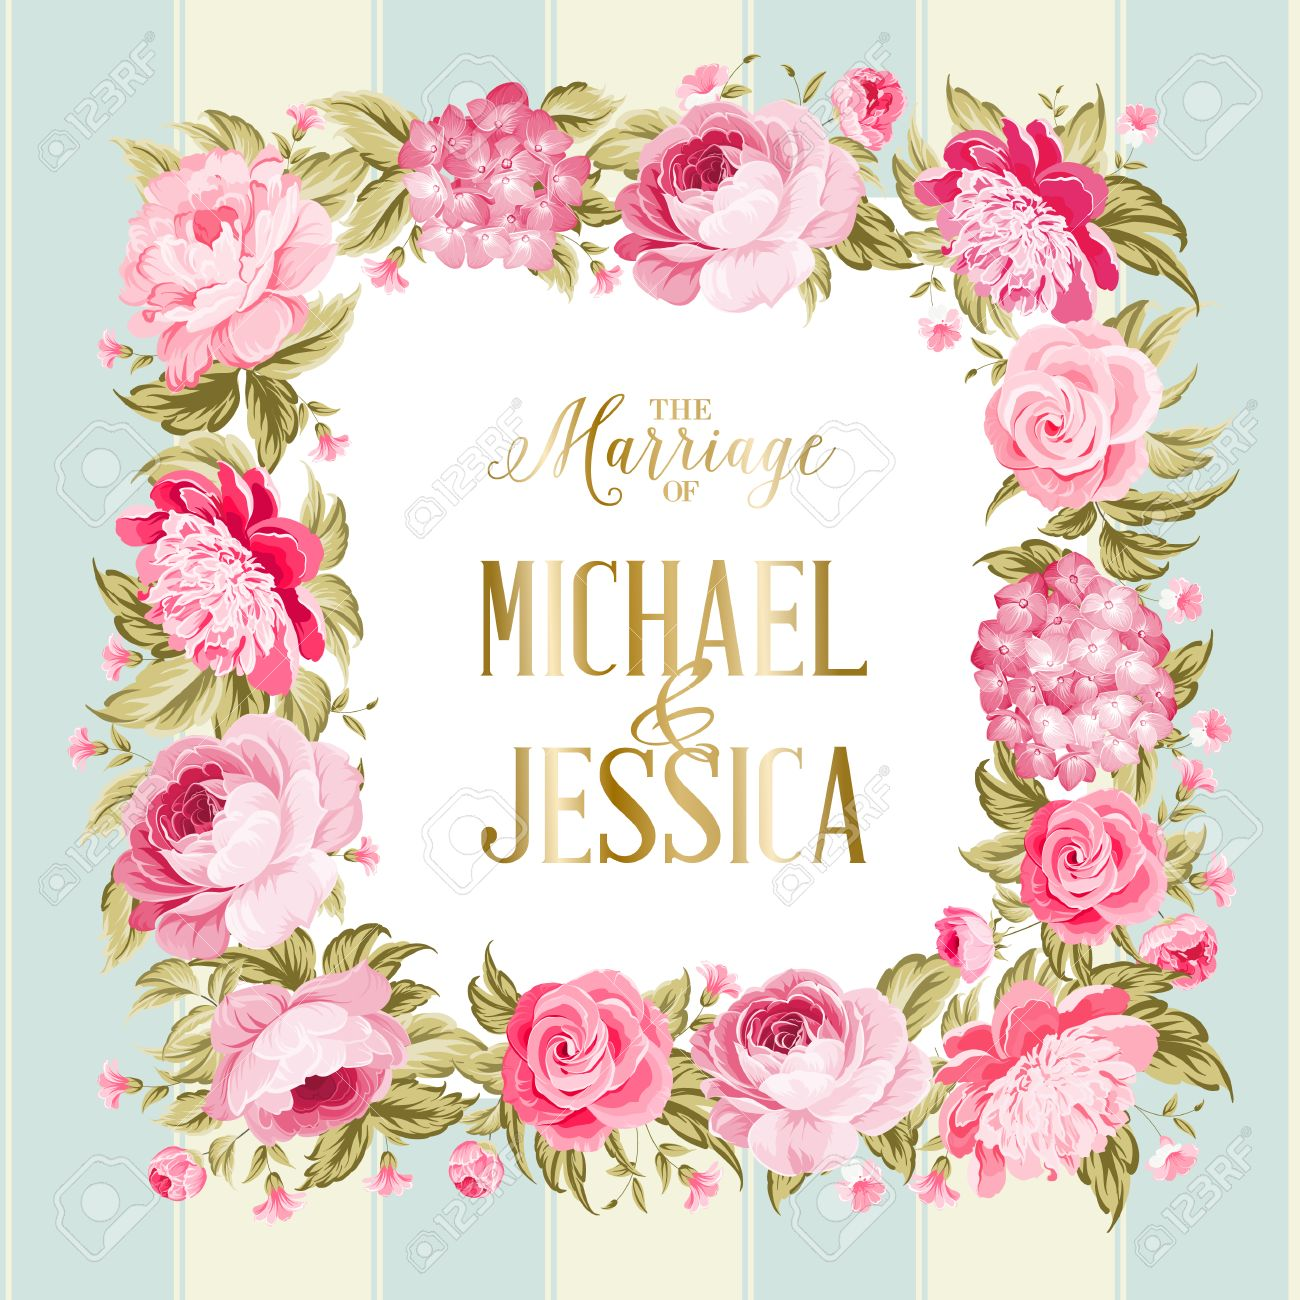 The Marriage Card Wedding Invitation Card Template Border Of